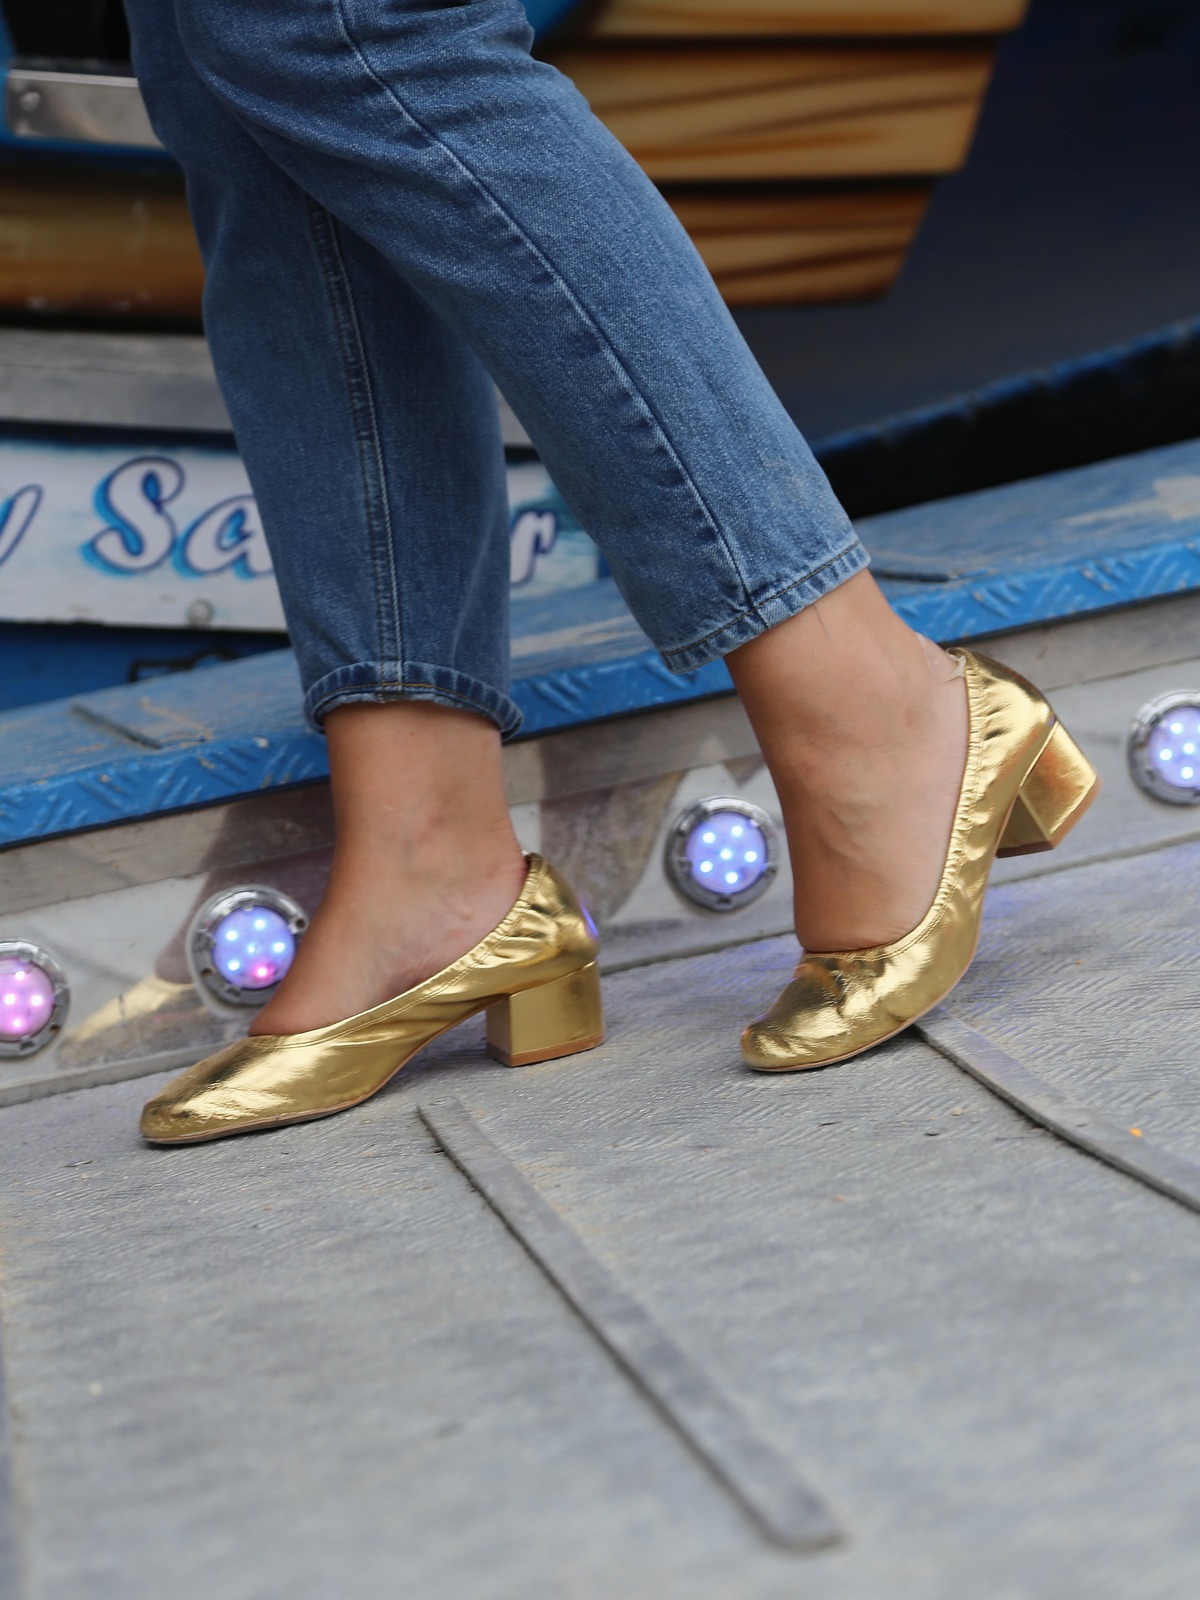 Blog mode femme Paris - Du style, Madame - streetstyle - ballerines dorées - gold